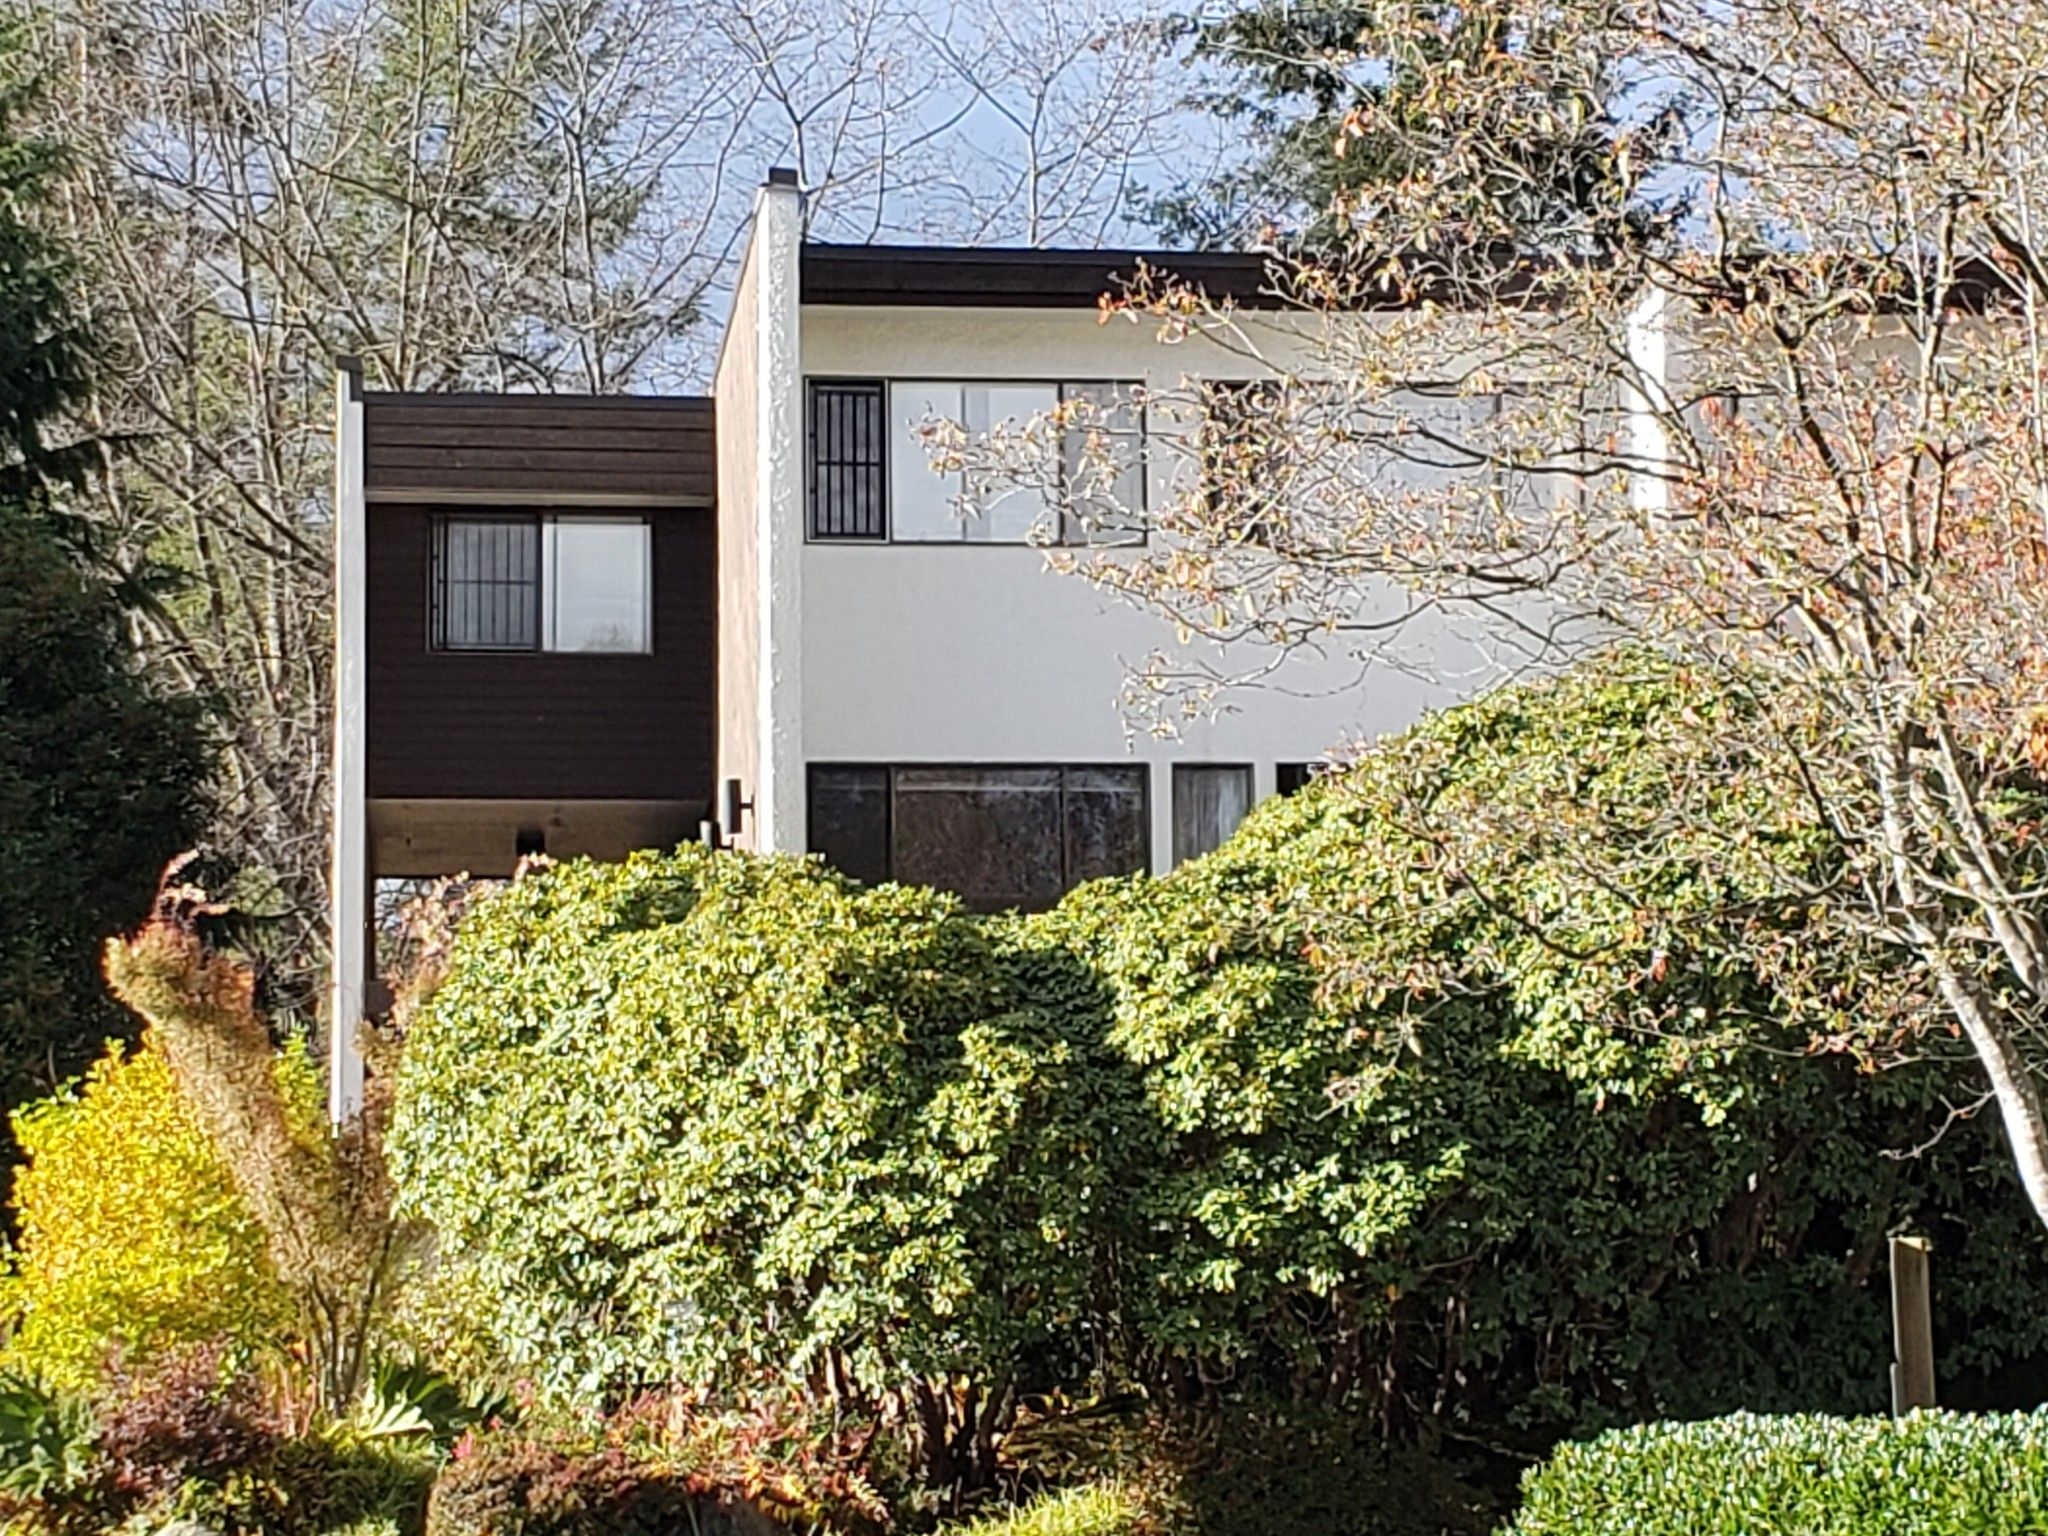 Main Photo: 8 7303 Montecito Drive in Burnaby: Montecito Townhouse for sale (Burnaby North)  : MLS®# R2320931